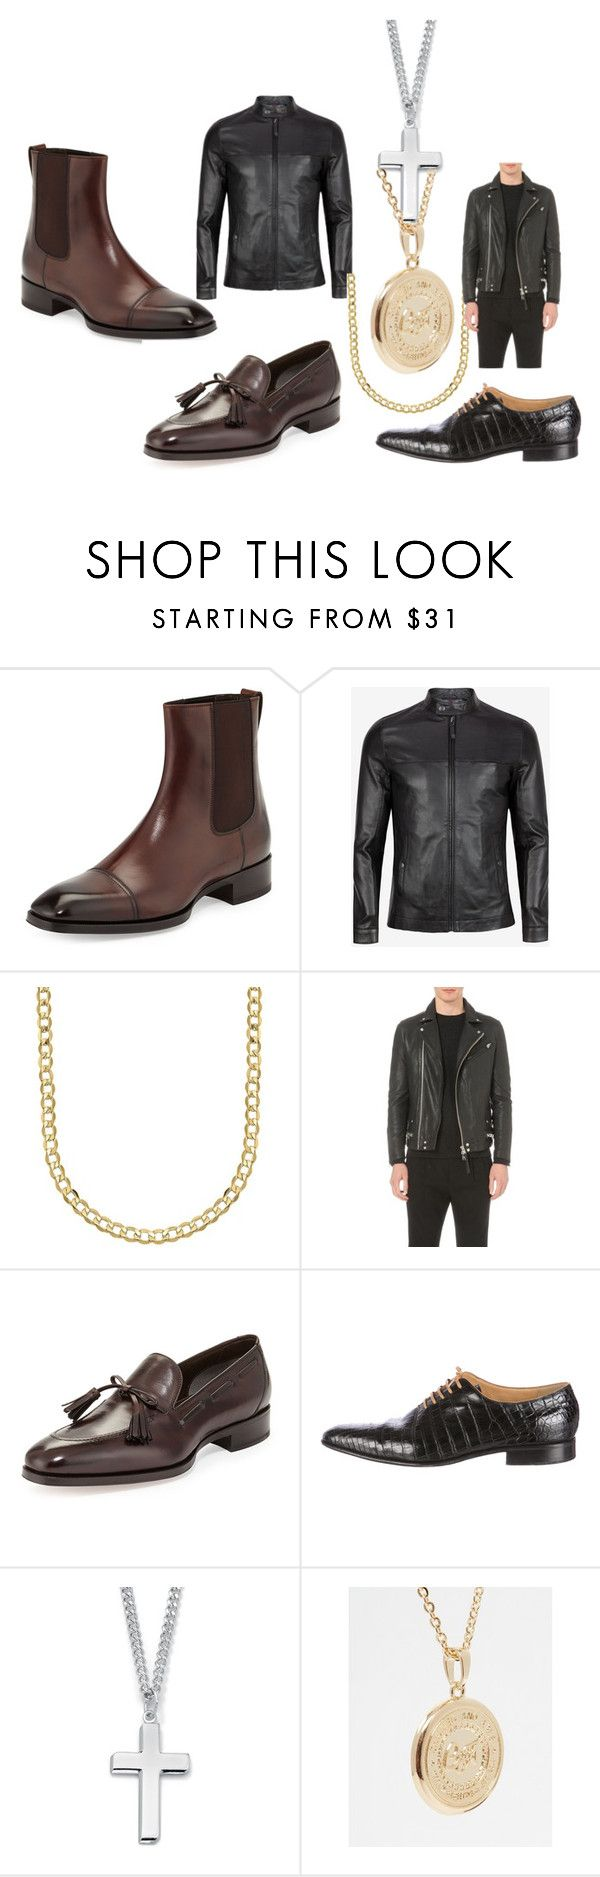 """""""men"""" by srishti-kar on Polyvore featuring Tom Ford, Ted Baker, Lord & Taylor, AllSaints, Stefano Ricci, Palm Beach Jewelry, Chained + Able, men's fashion and menswear"""